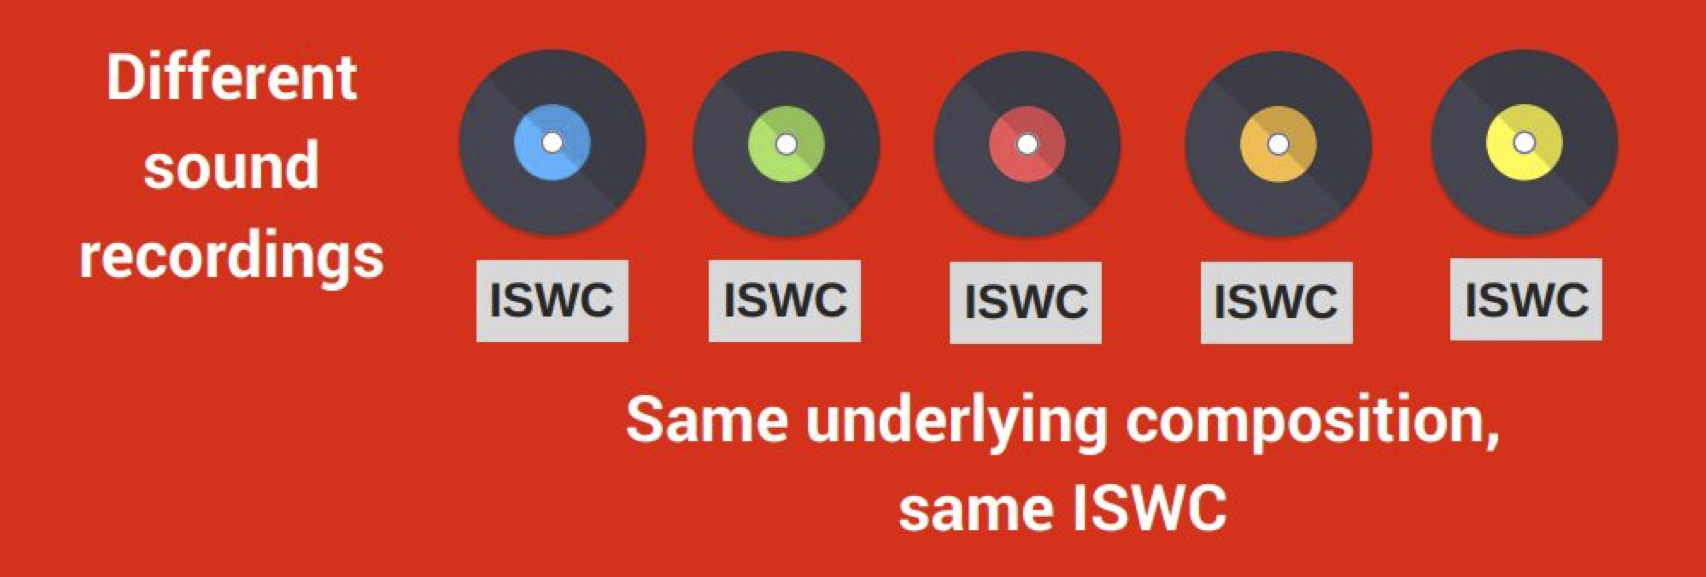 Same composition and ISWC, different recording